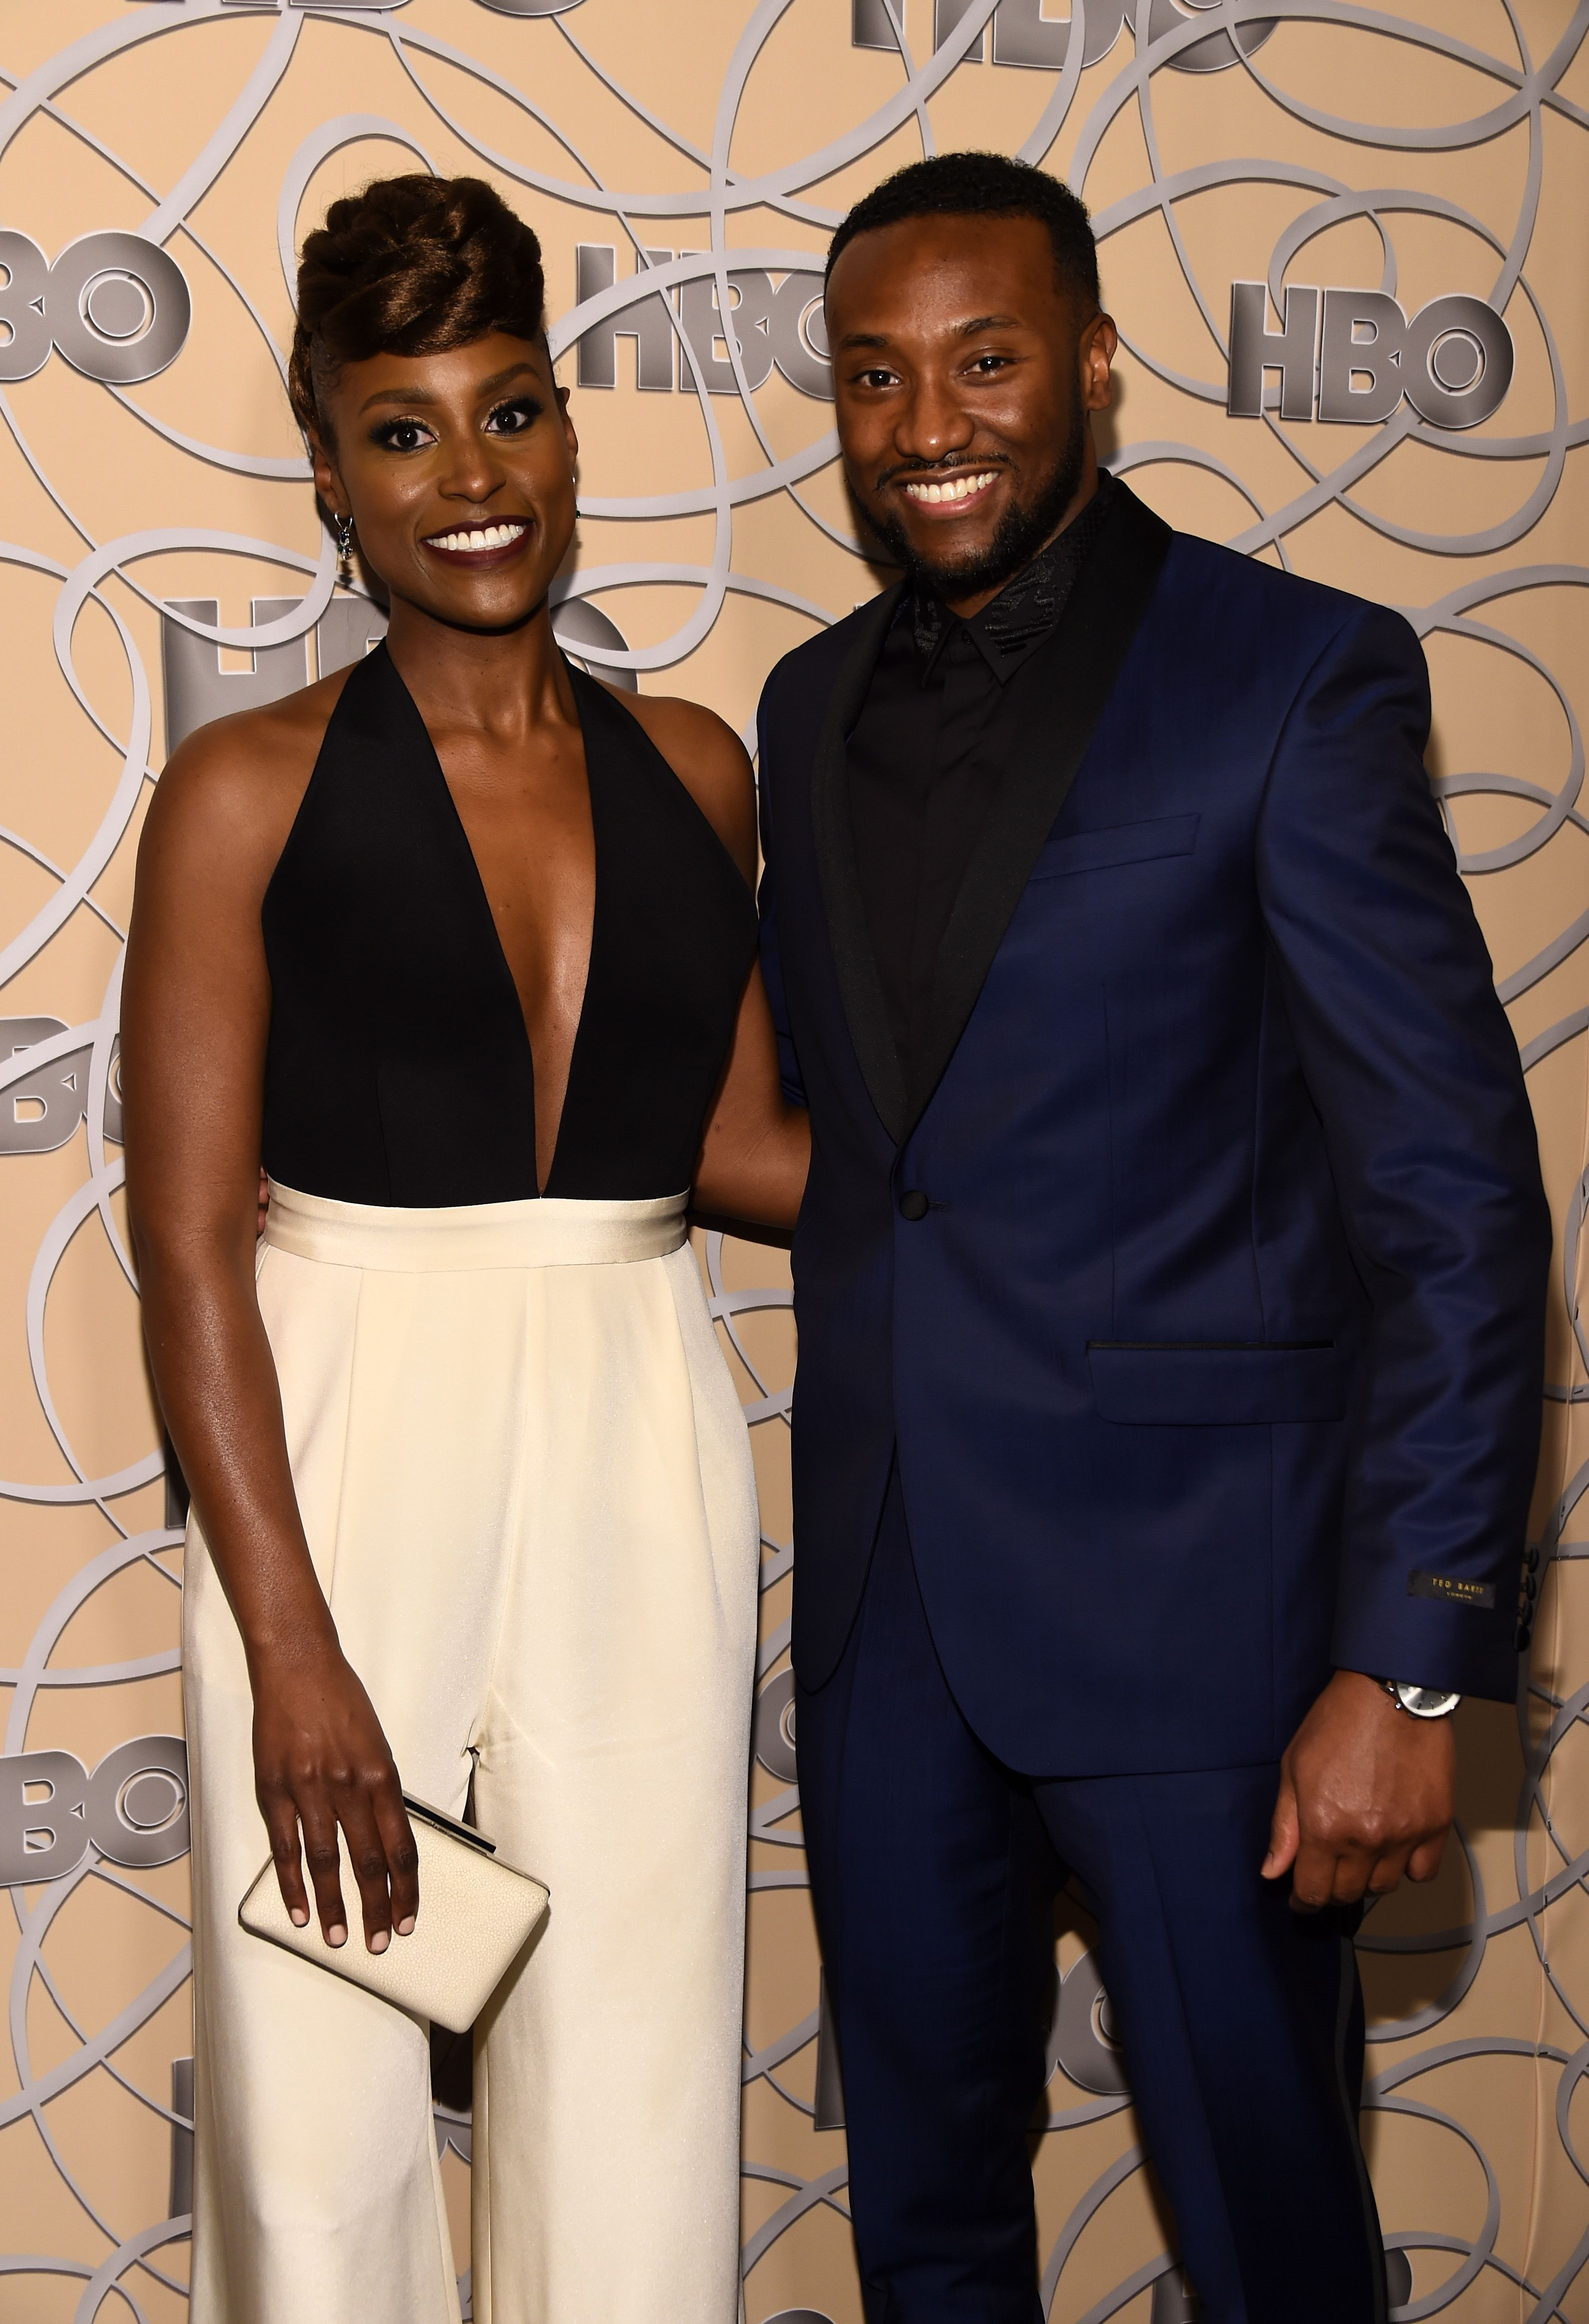 Issa Rae and Her Fiancé Louis Diame's Relationship Is Top Secret and Peak Cute